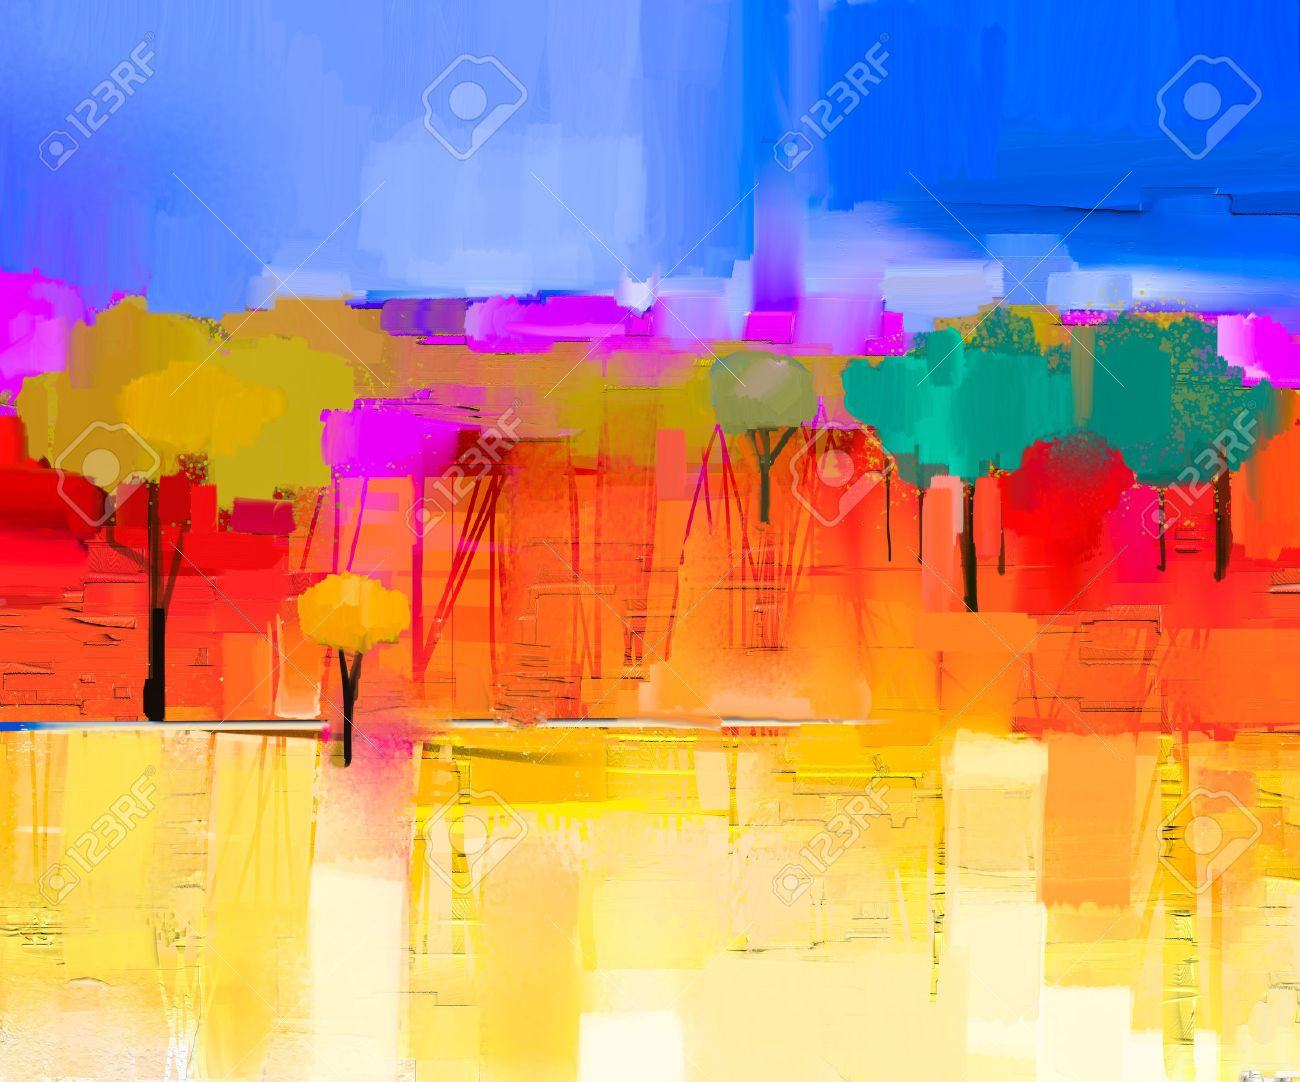 Abstract colorful oil painting landscape on canvas. Semi- abstract image of tree and field in yellow and red with blue sky. Spring season nature background - 52536602